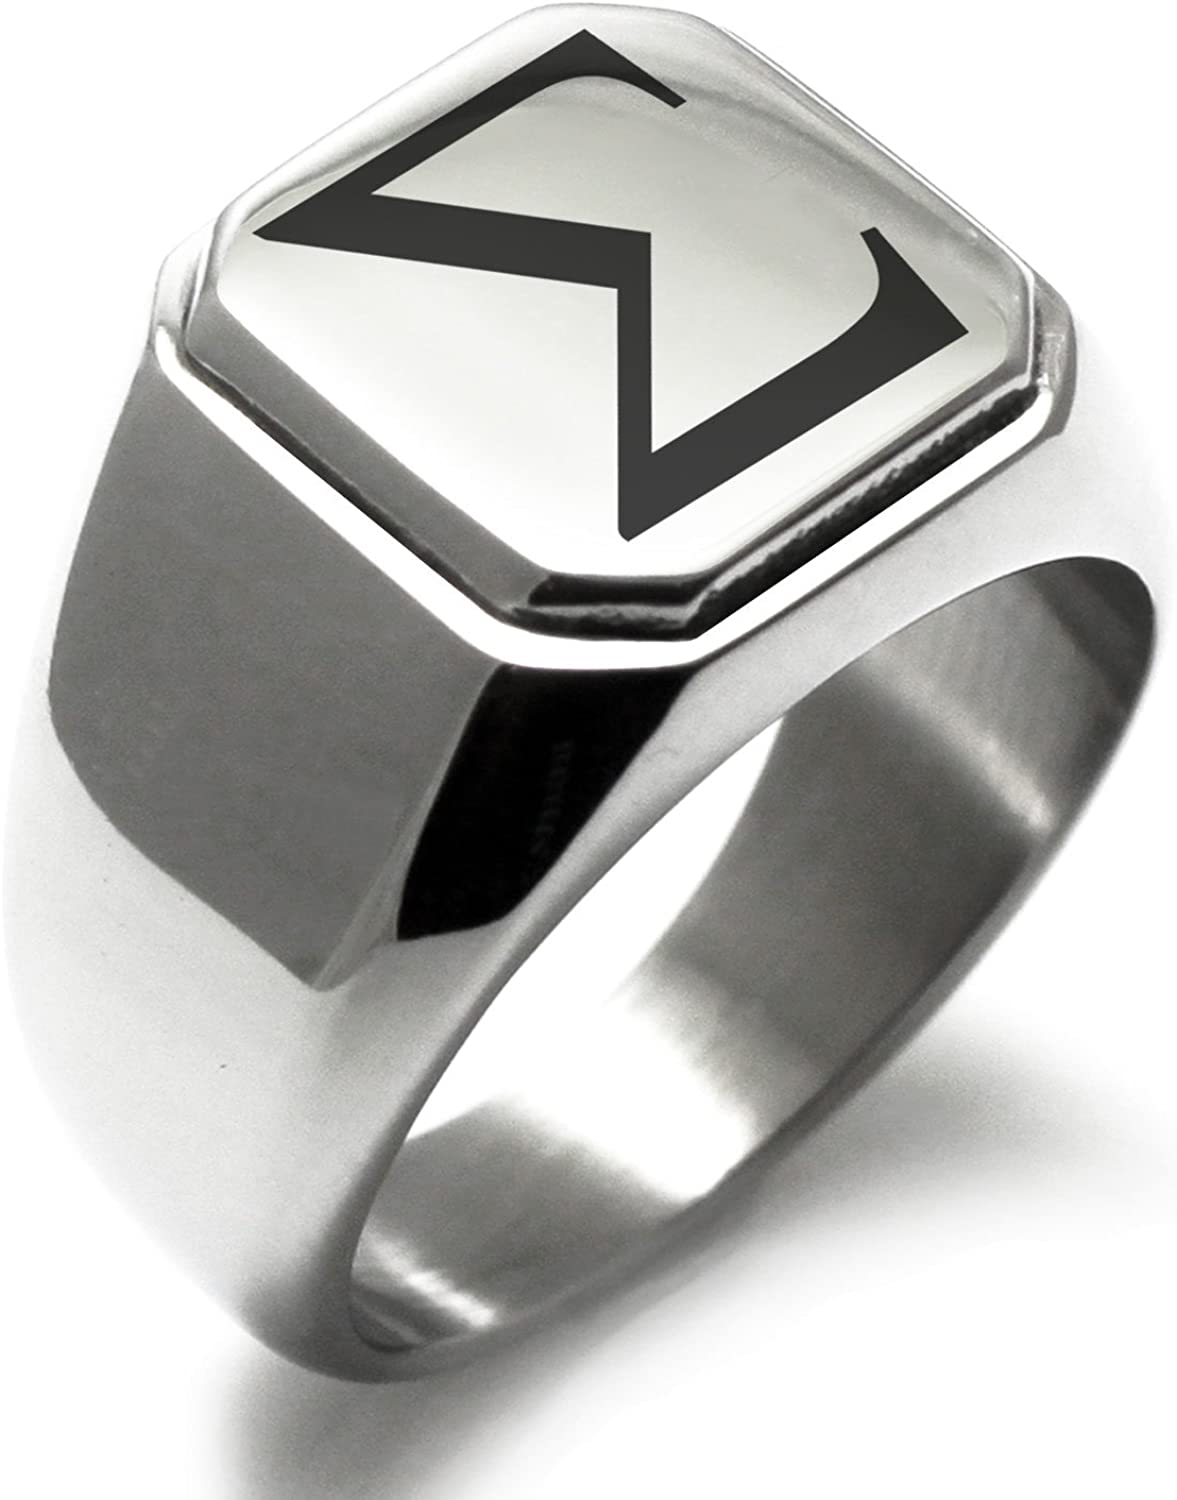 Tioneer Stainless Cheap mail order Max 81% OFF specialty store Steel Signet Biker Rings Greek Symbol Men for